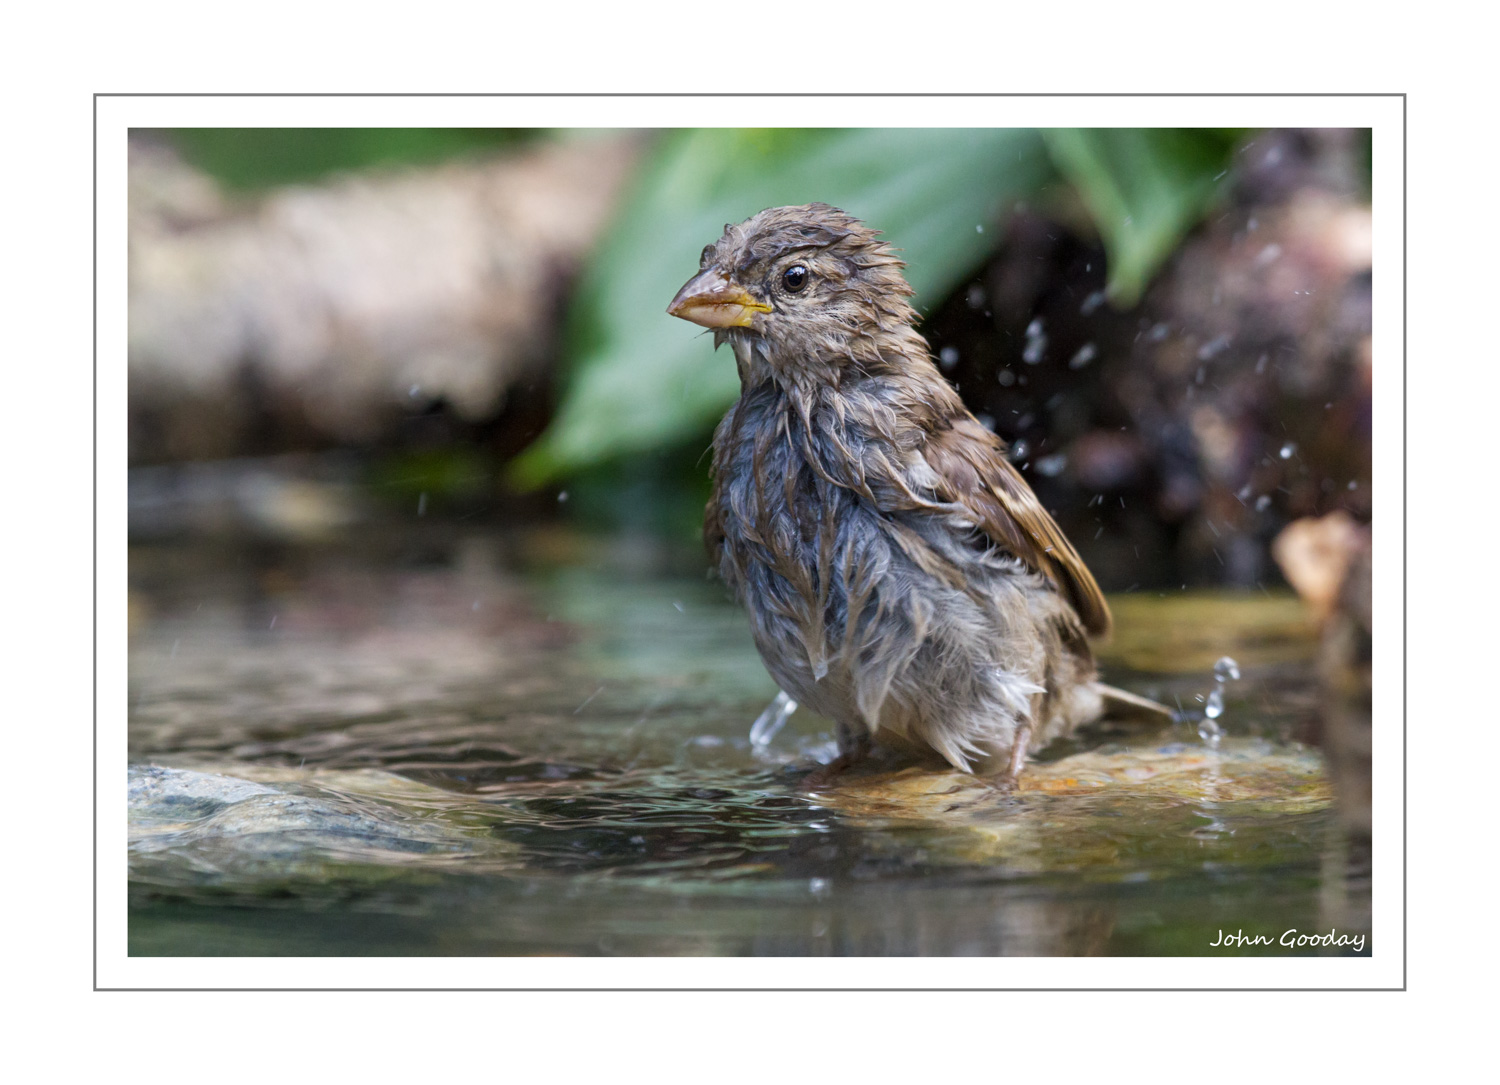 (Image: female House Sparrow. Canon EOS7D, EF100-400mm f/4.5-5.6L IS, 1/500 sec @ f/6.3, ISO 1600, tripod, hide)